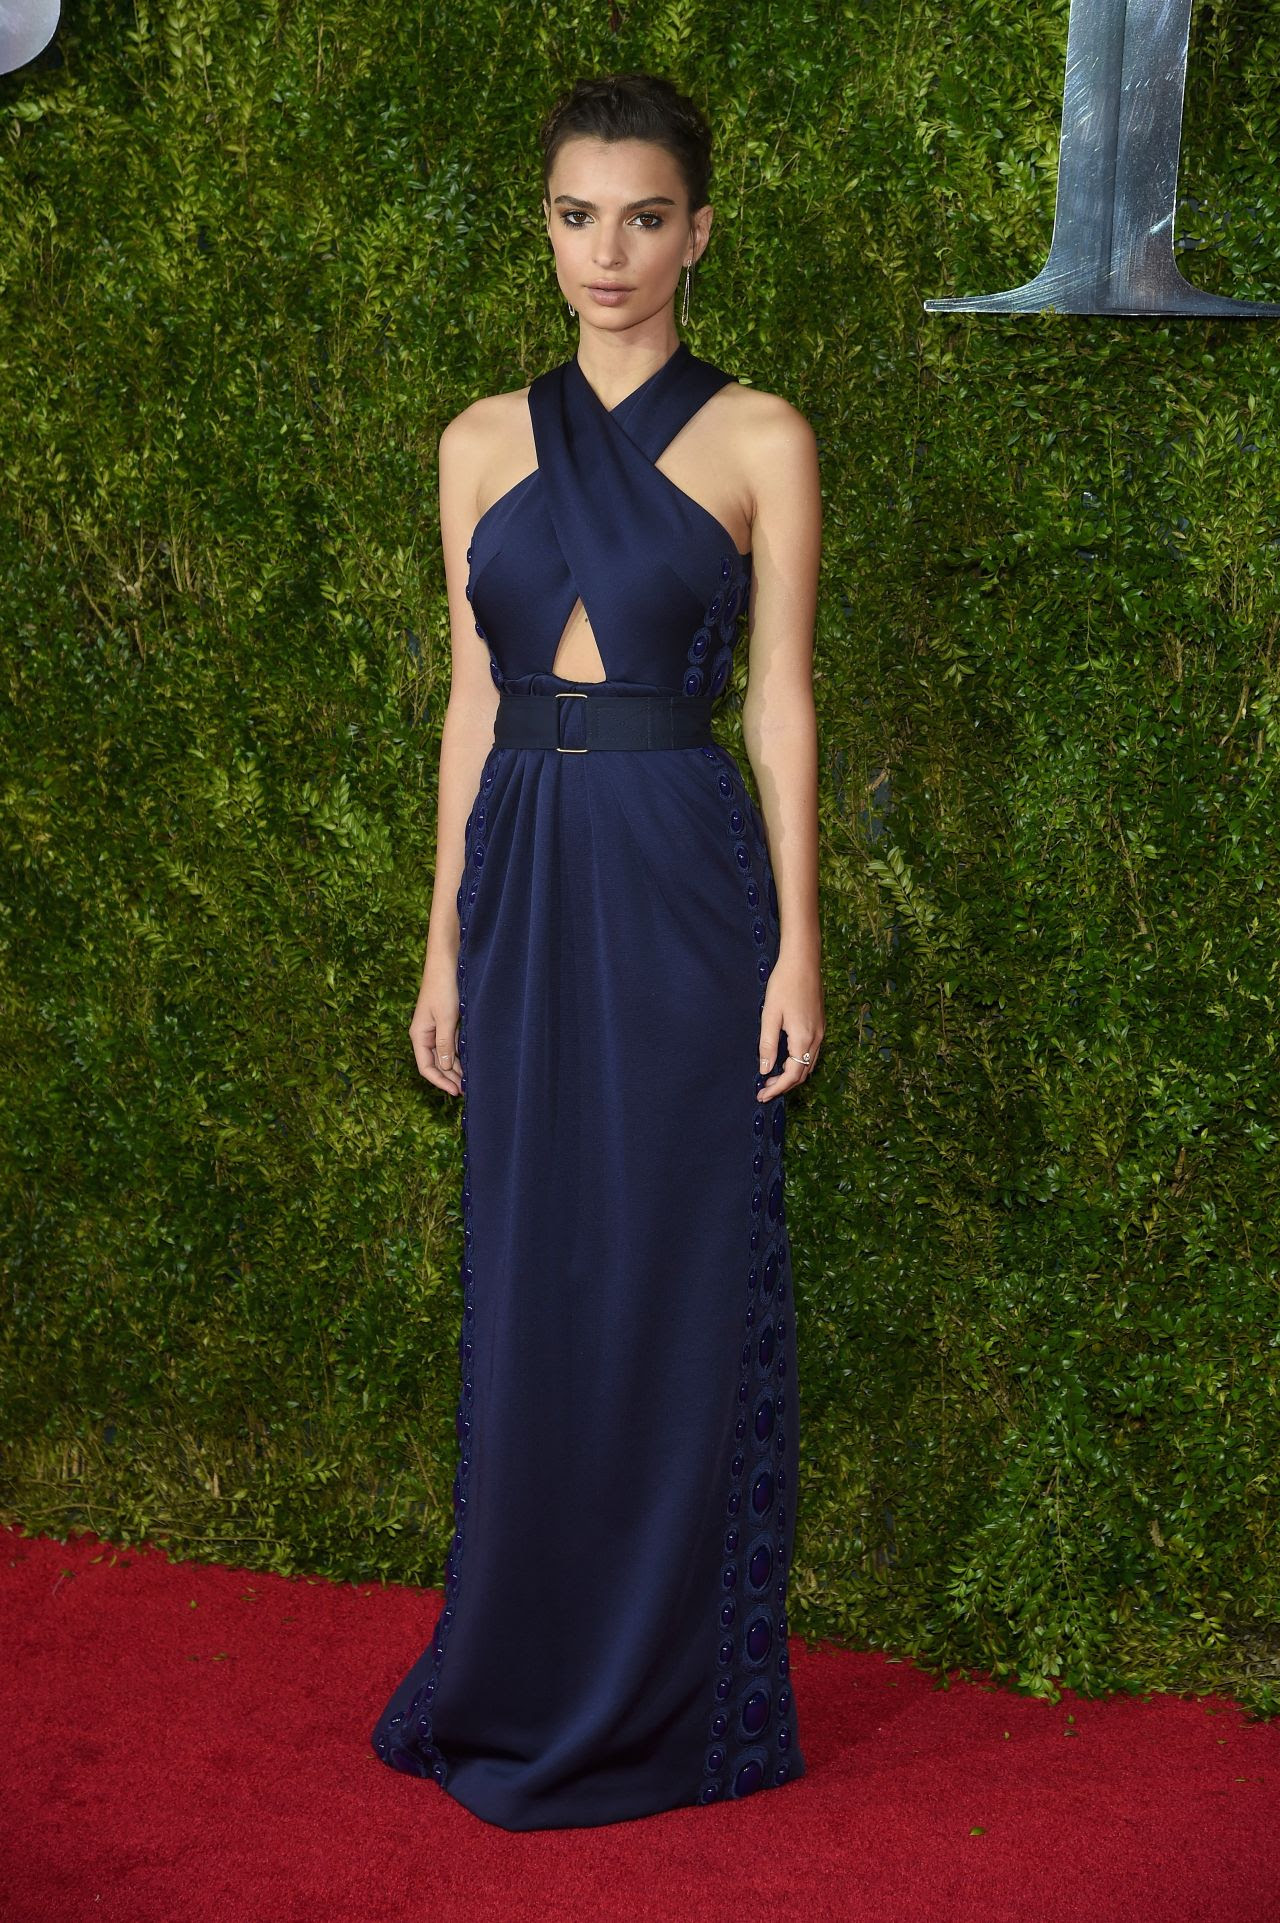 http://fashionsizzle.com/wp-content/uploads/2015/06/emily-ratajkowski-2015-tony-awards-in-new-york-city_2.jpg